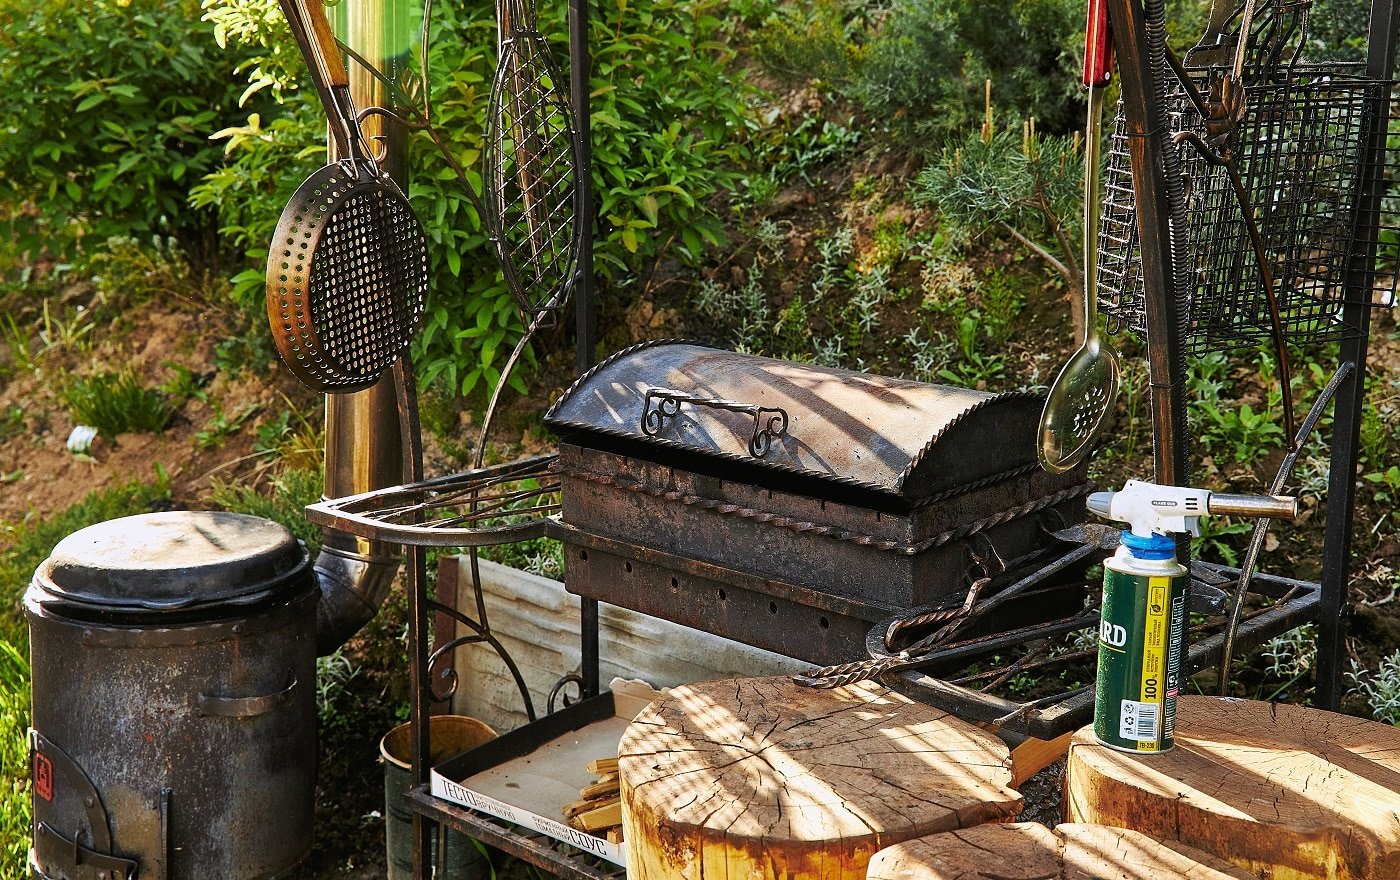 Barbecue grill as a outdoor appliance.